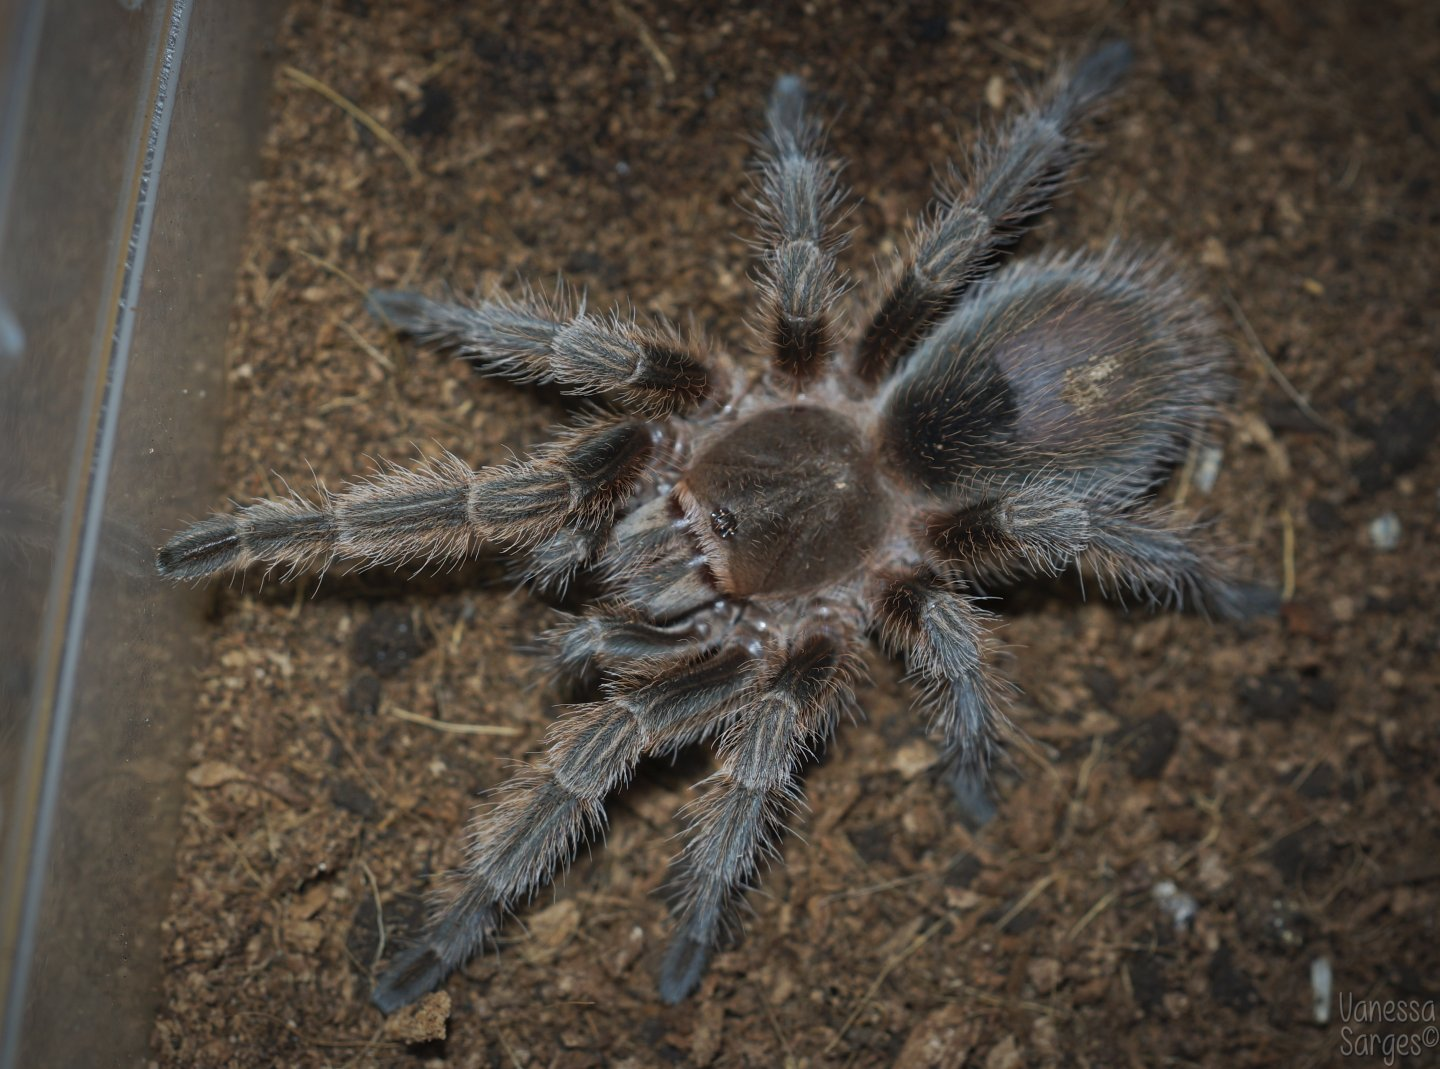 Grammostola sp. Concepcion Juvenile Male